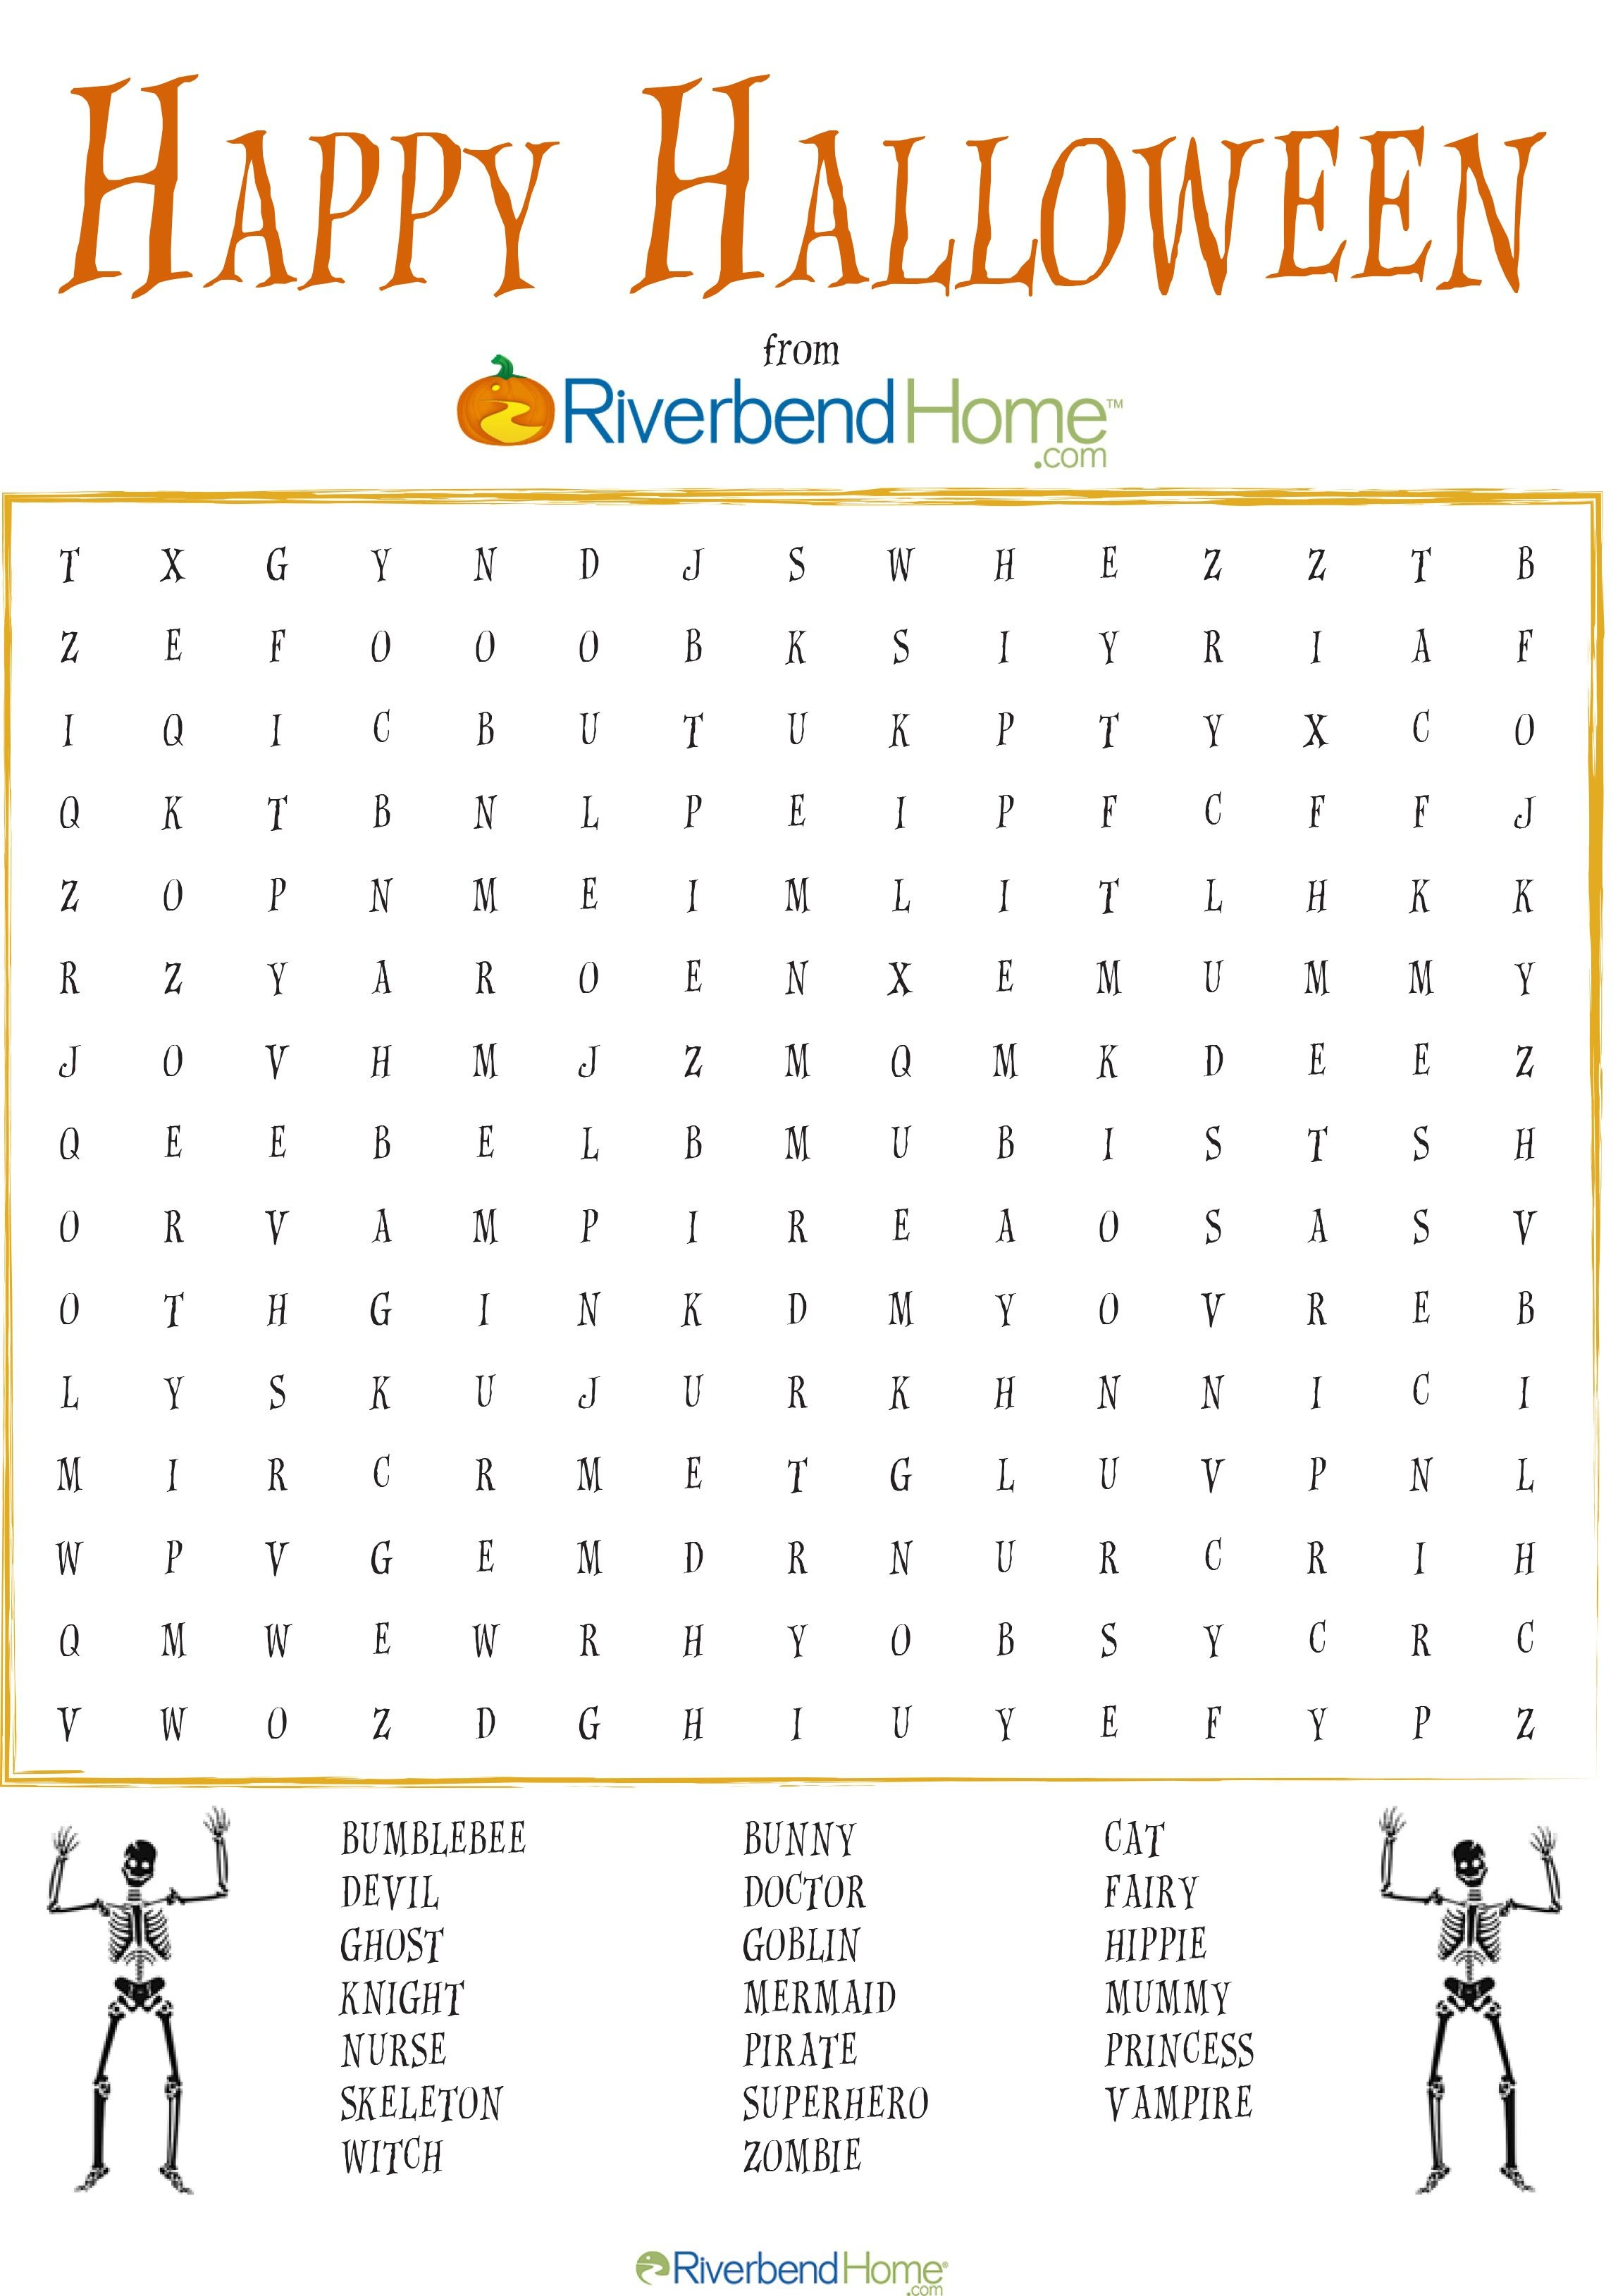 Free Printable Halloween Word Search Puzzle   Halloween   Halloween - Free Printable Halloween Word Search Puzzles